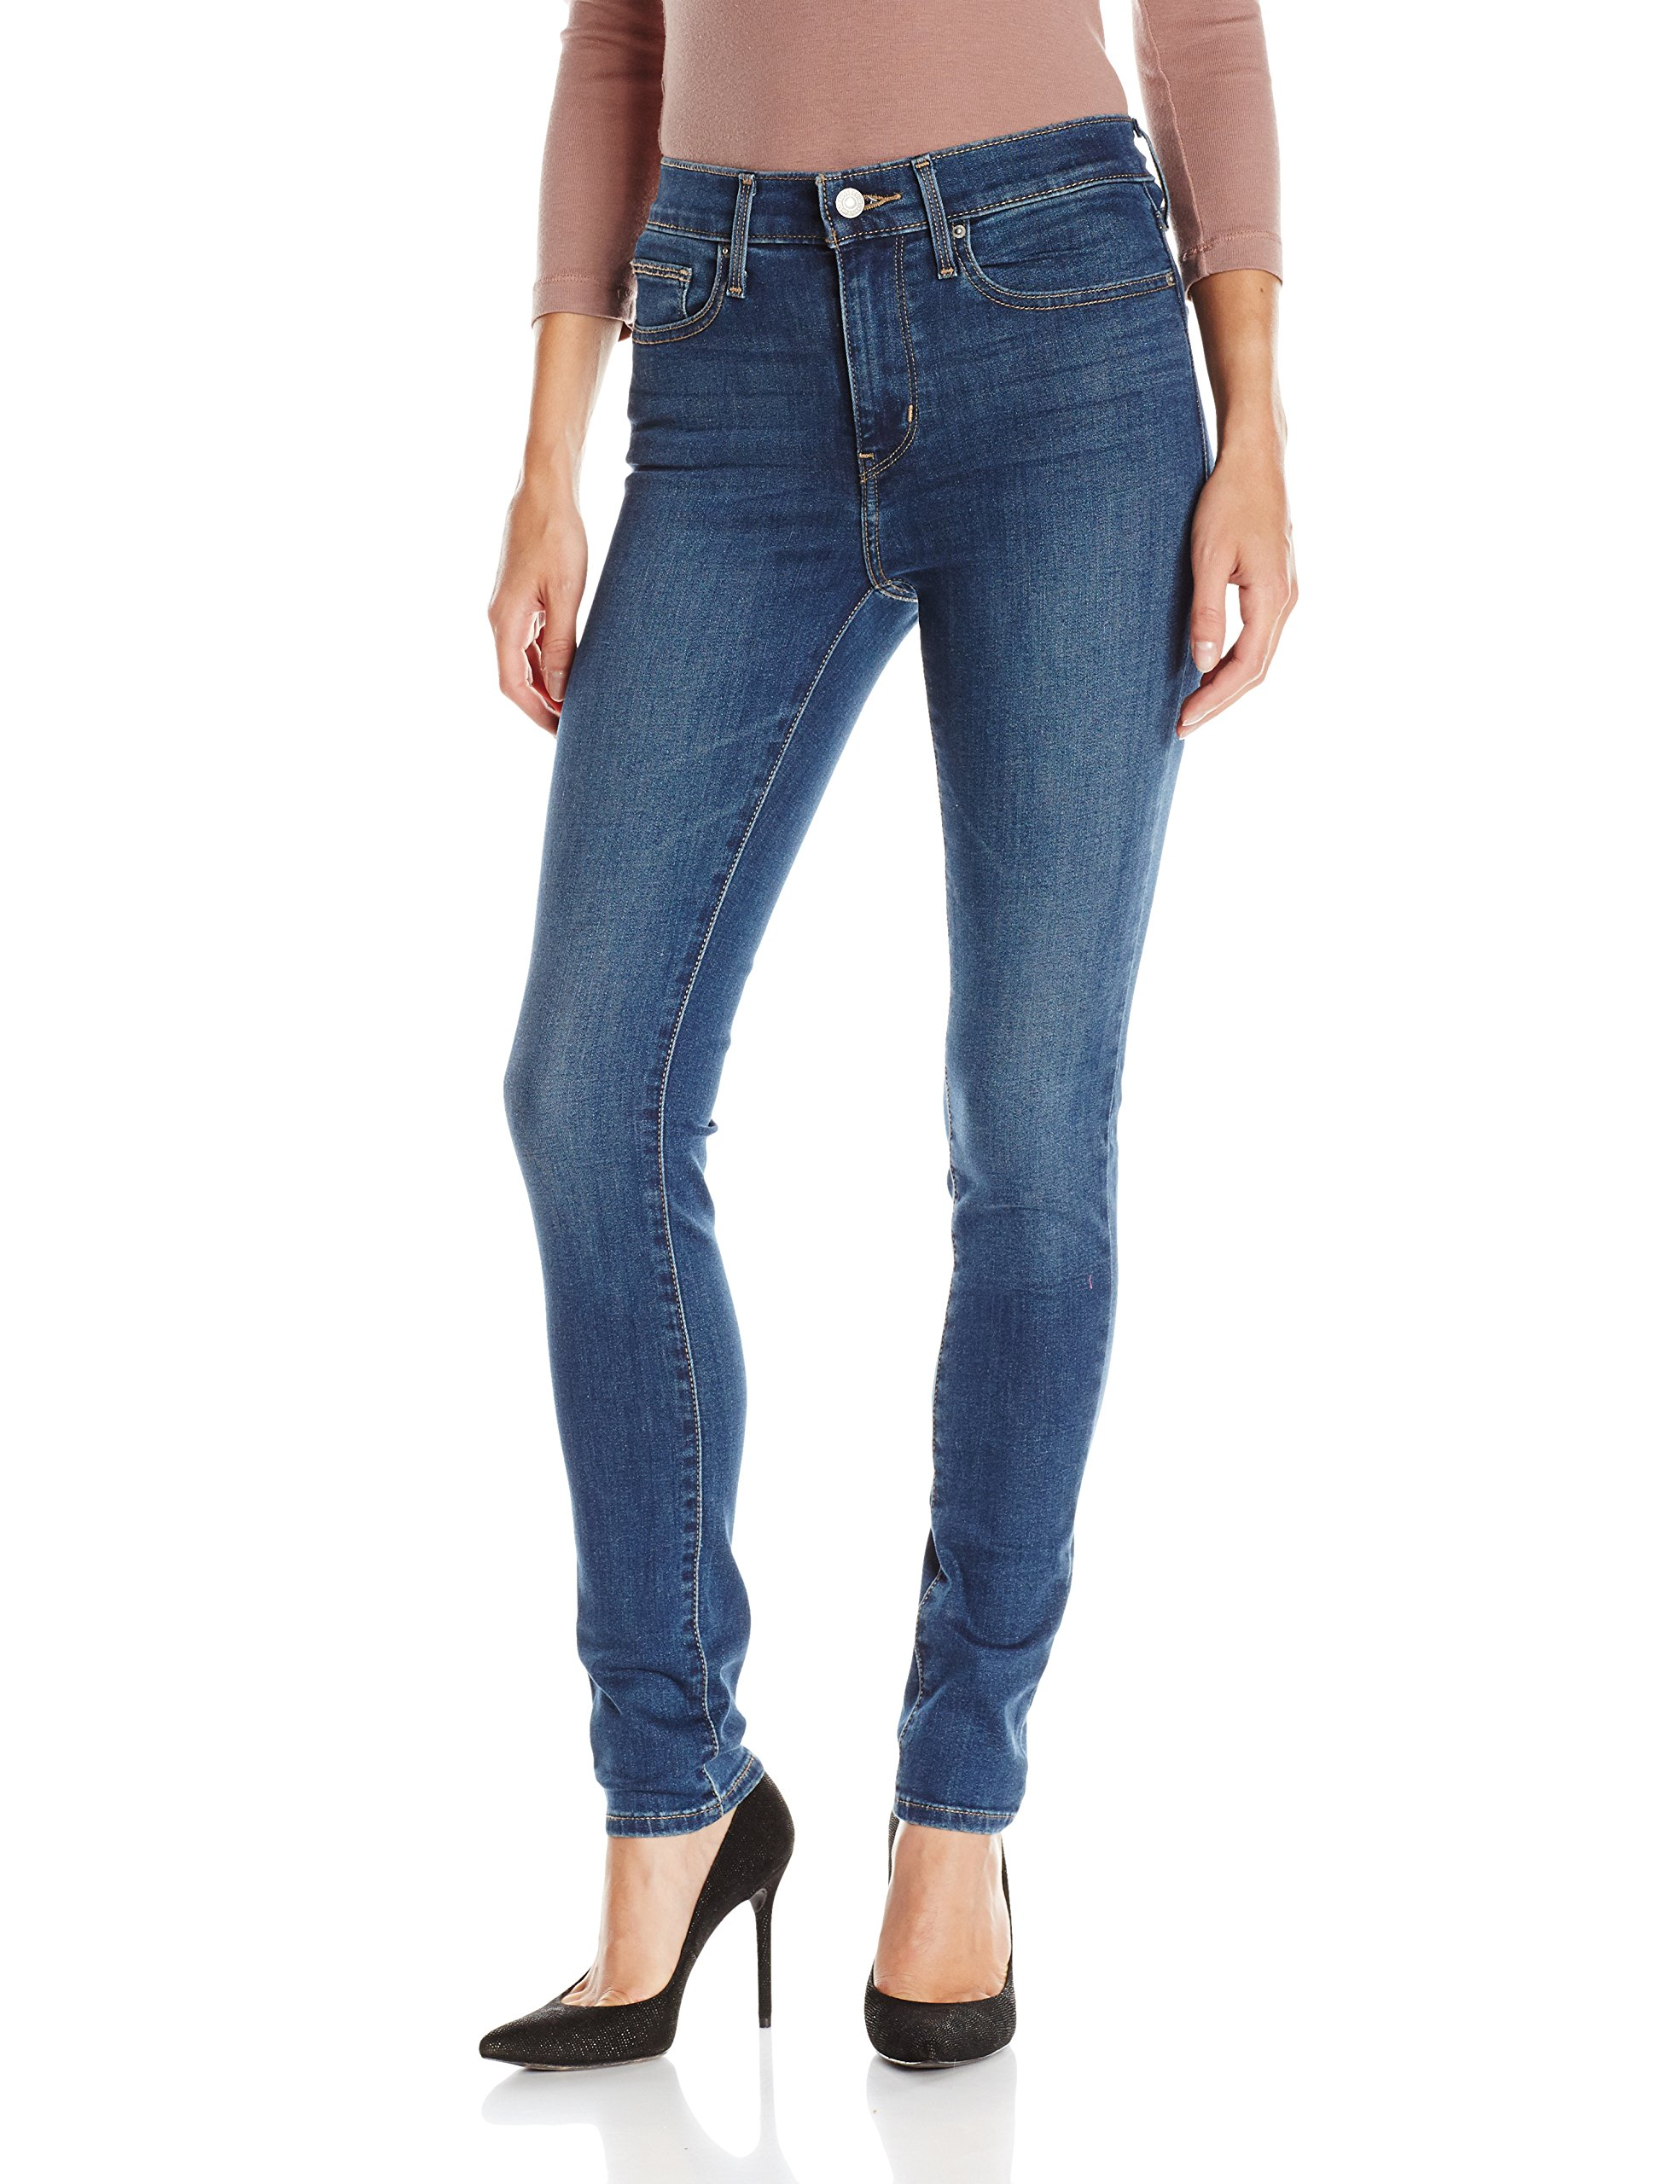 Levi's Women's Slimming Skinny Jean, Forest Lodge (89% Cotton, 9% Polyester, 2% Elastane), 31Wx30L